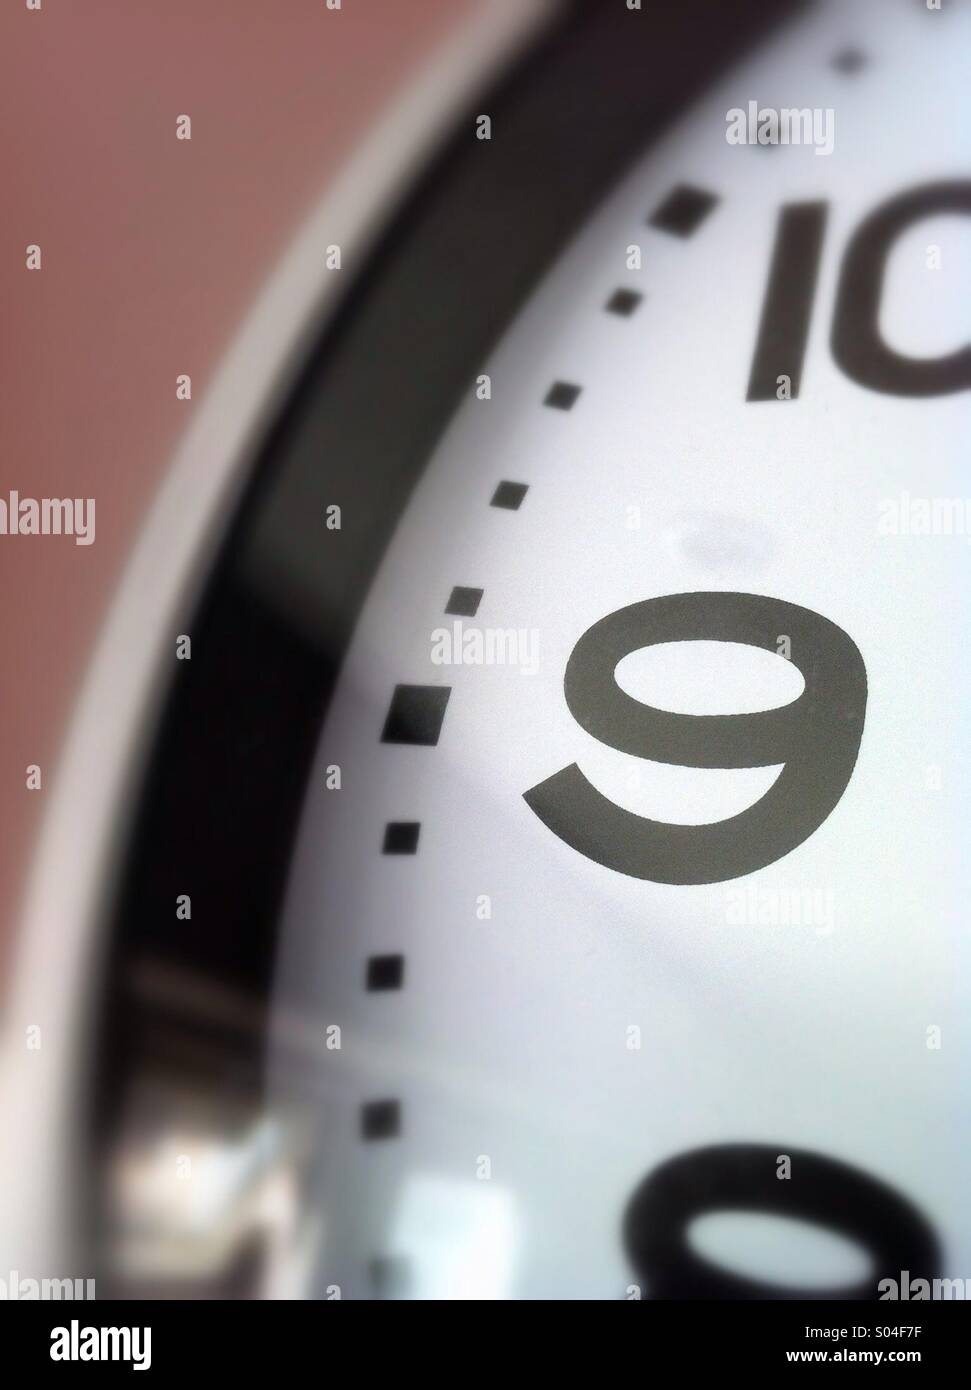 Number 9 on clock face - Stock Image